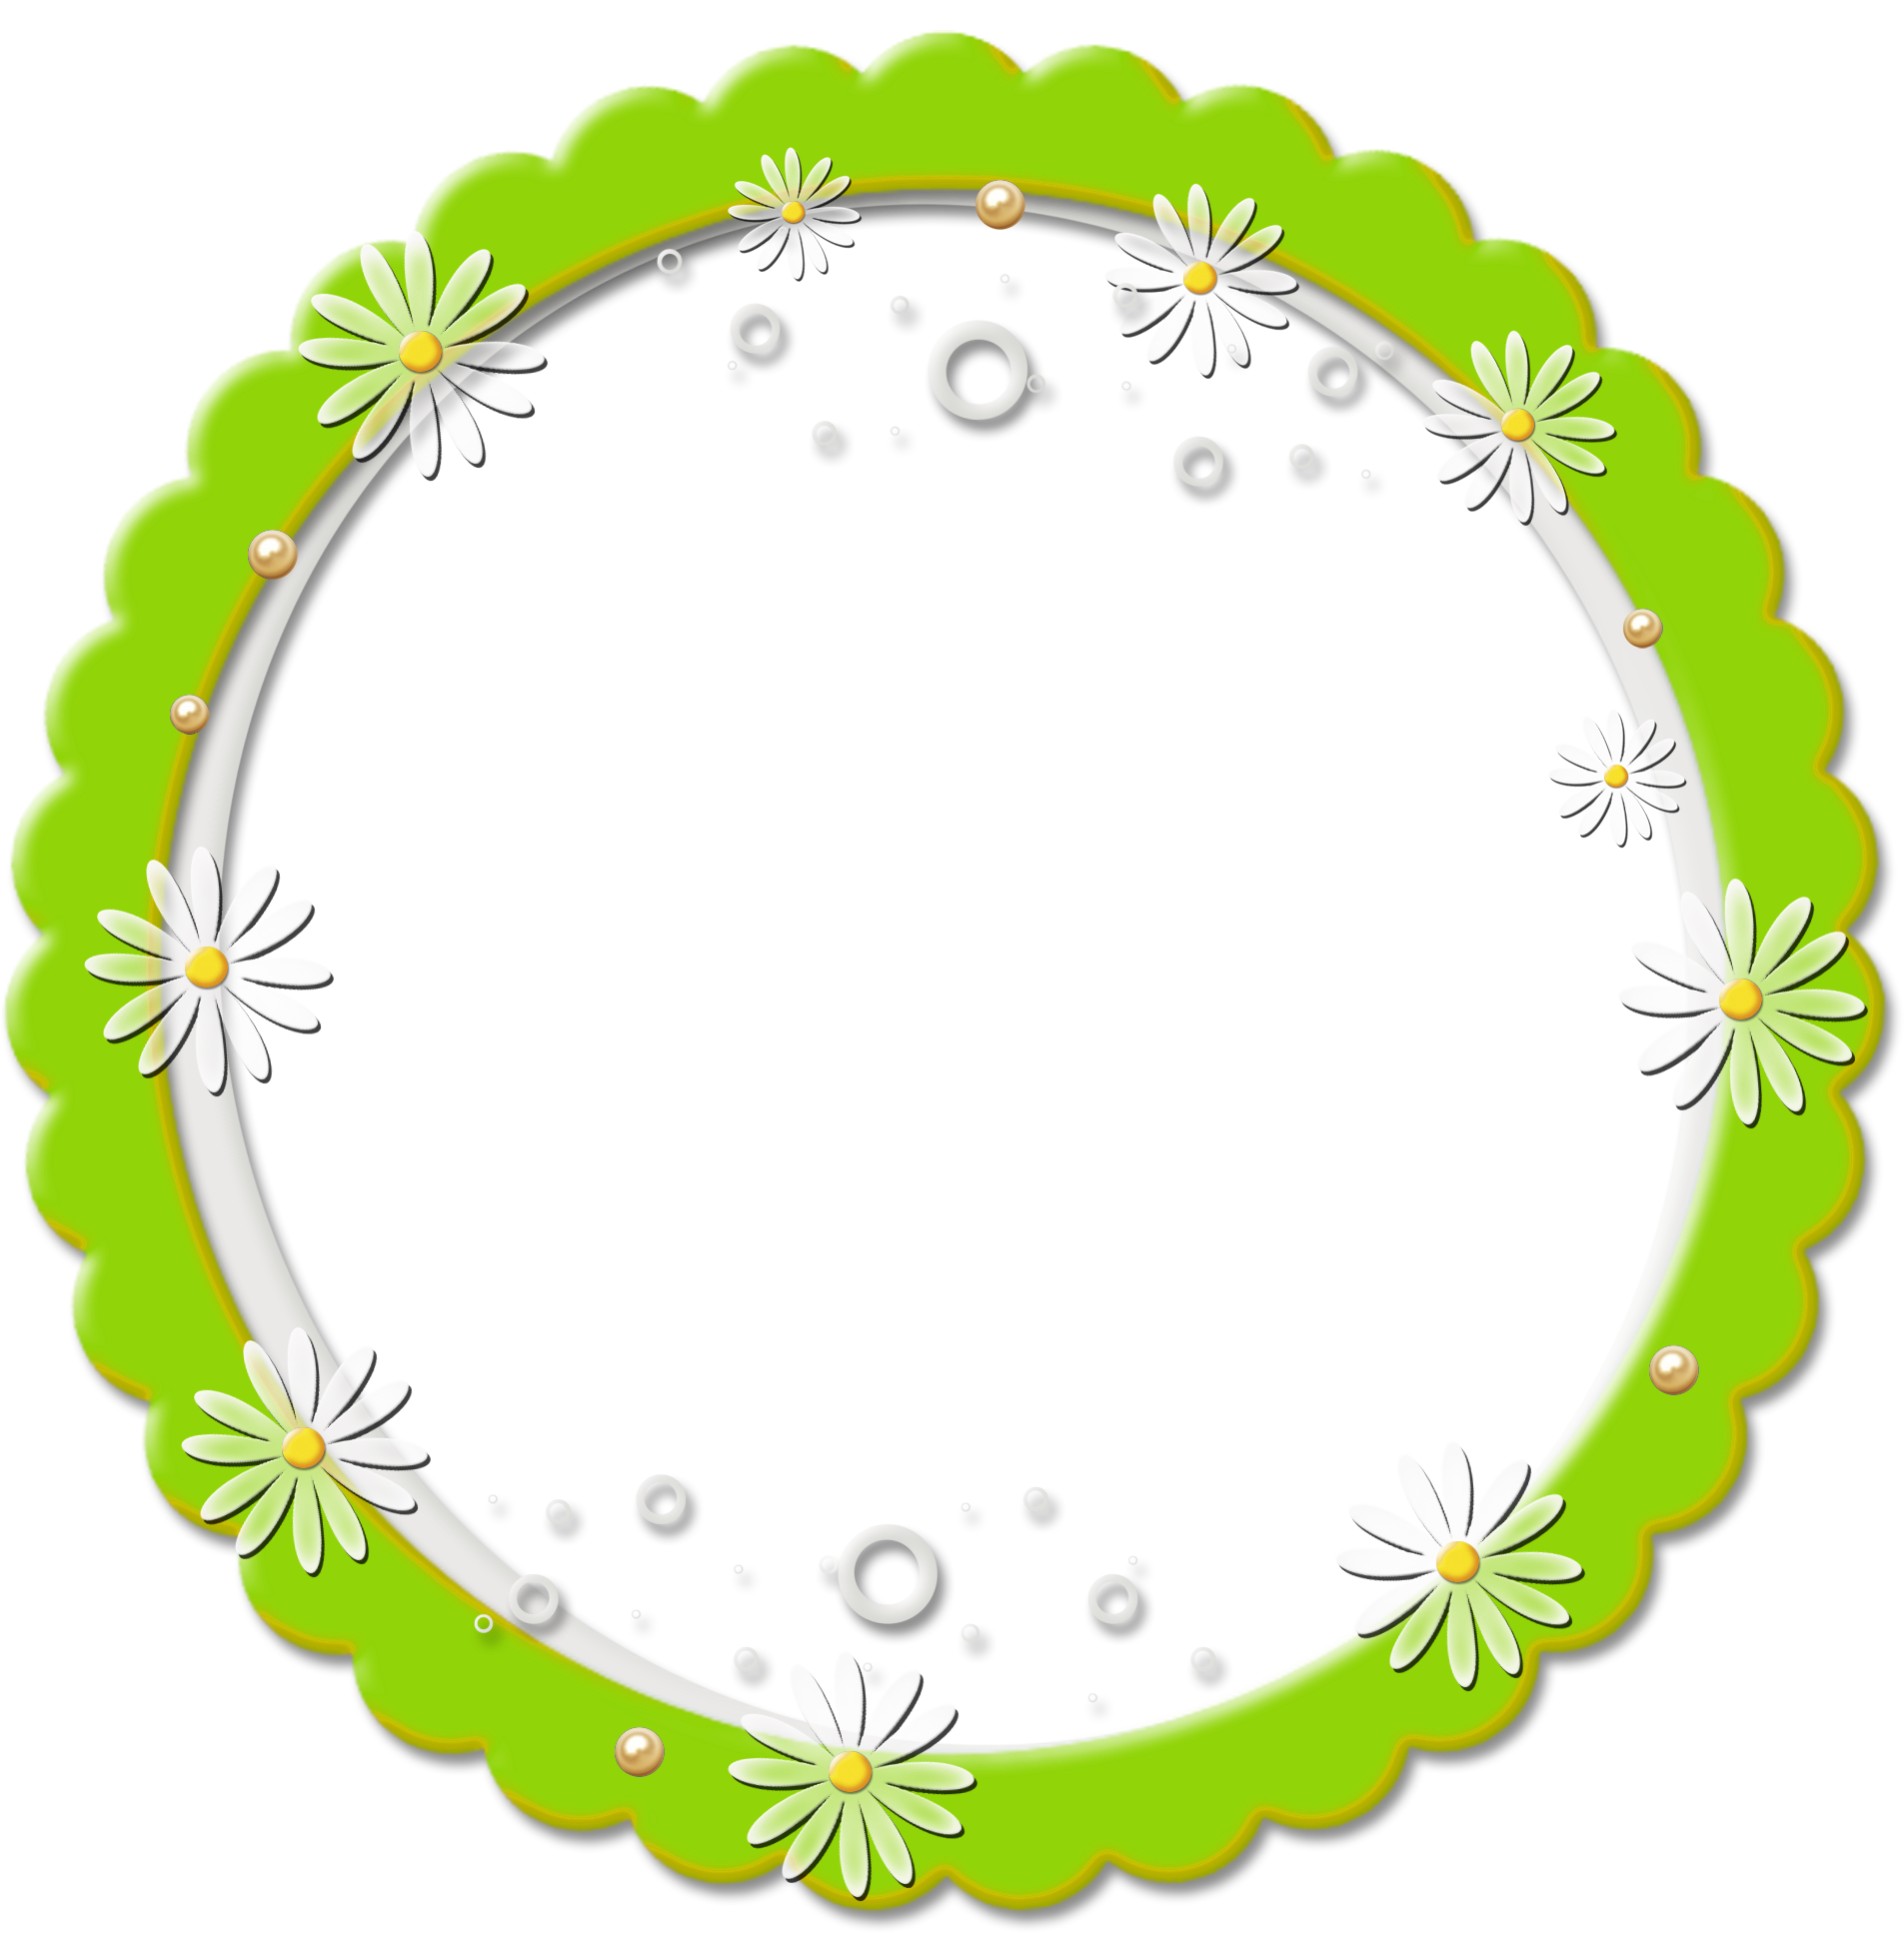 Black circle frame png. Cute round daisy gallery